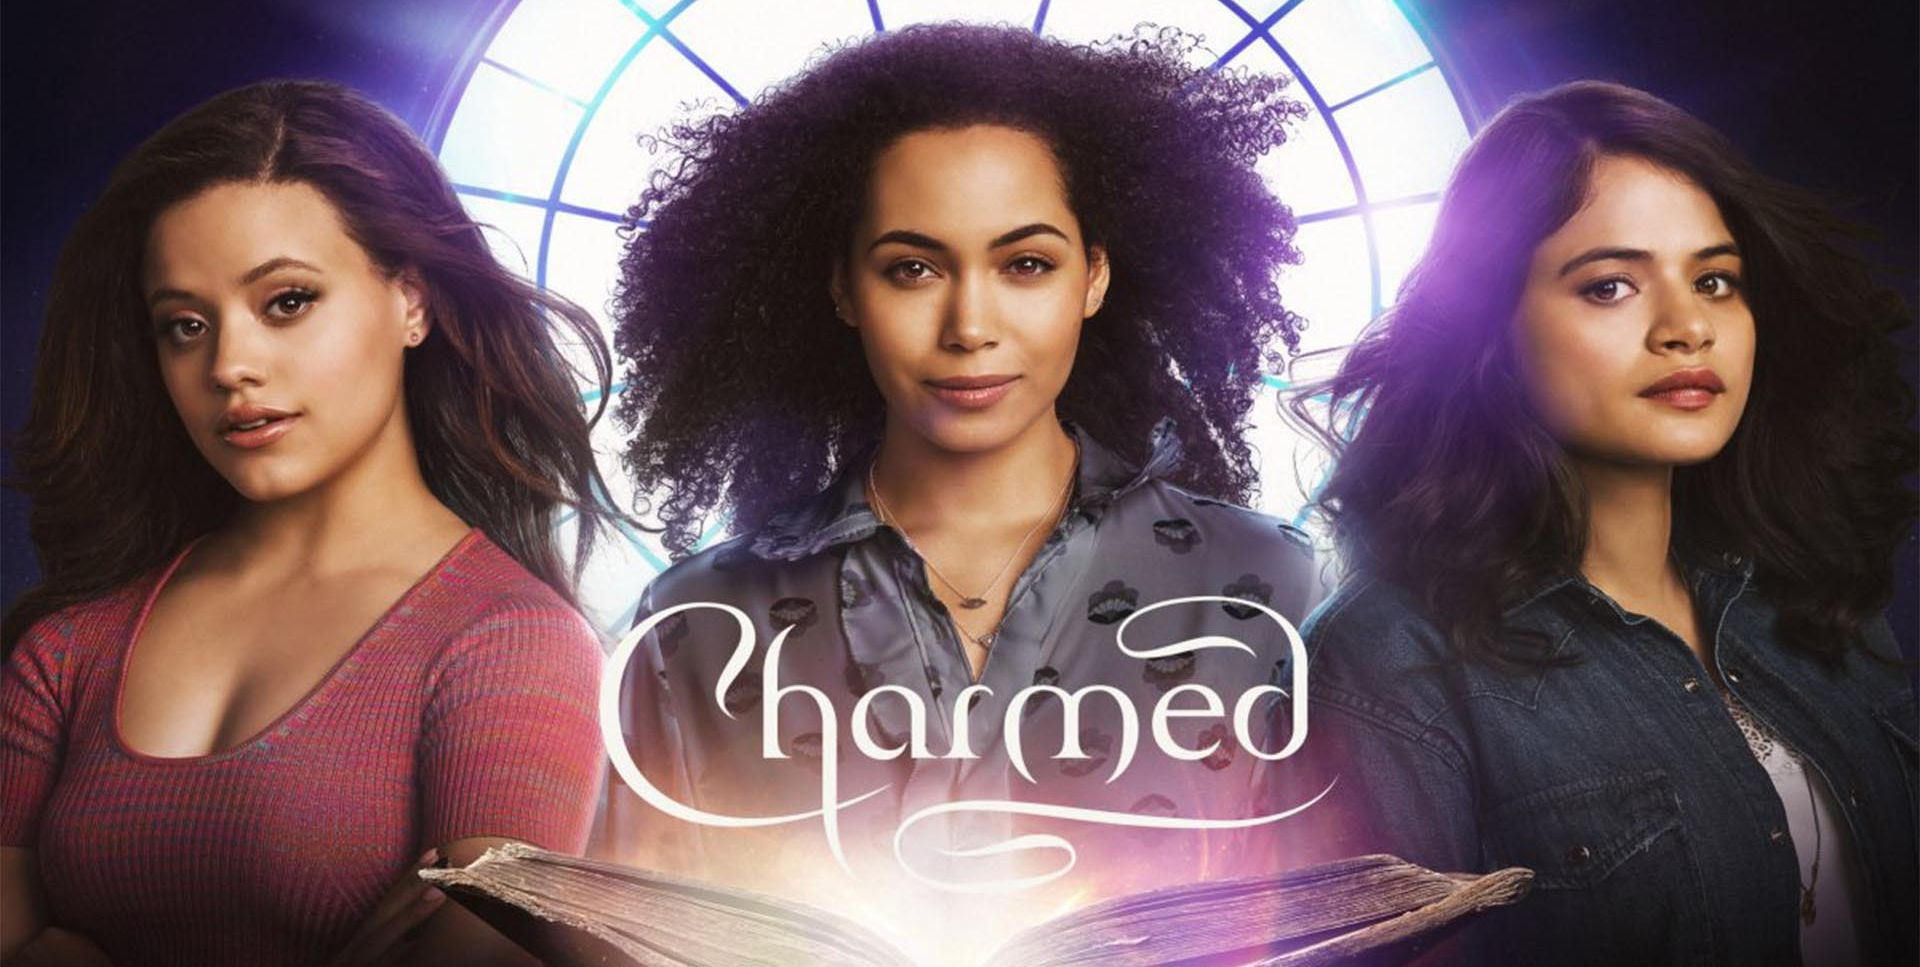 Charmed reboot poster